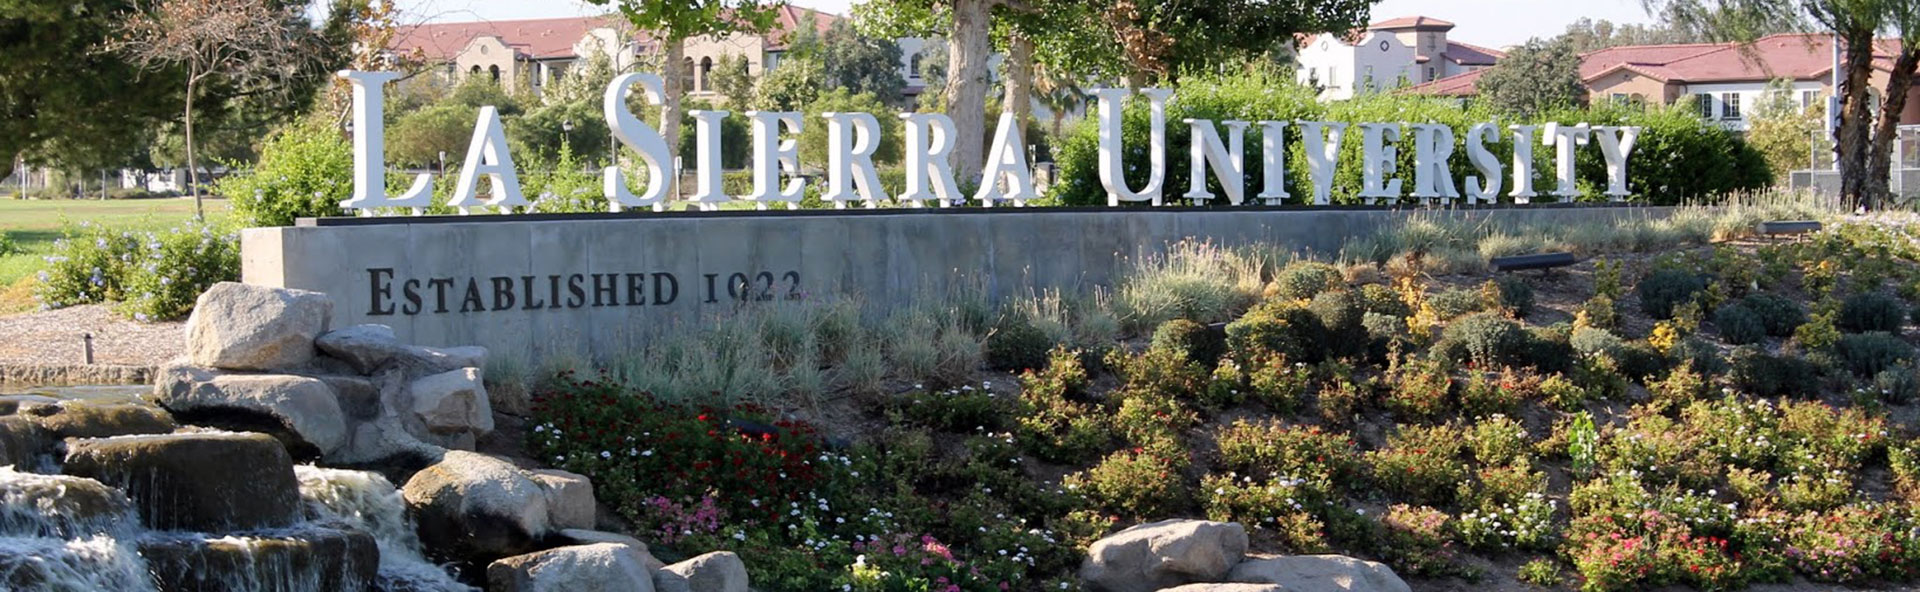 La Sierra University Riverside